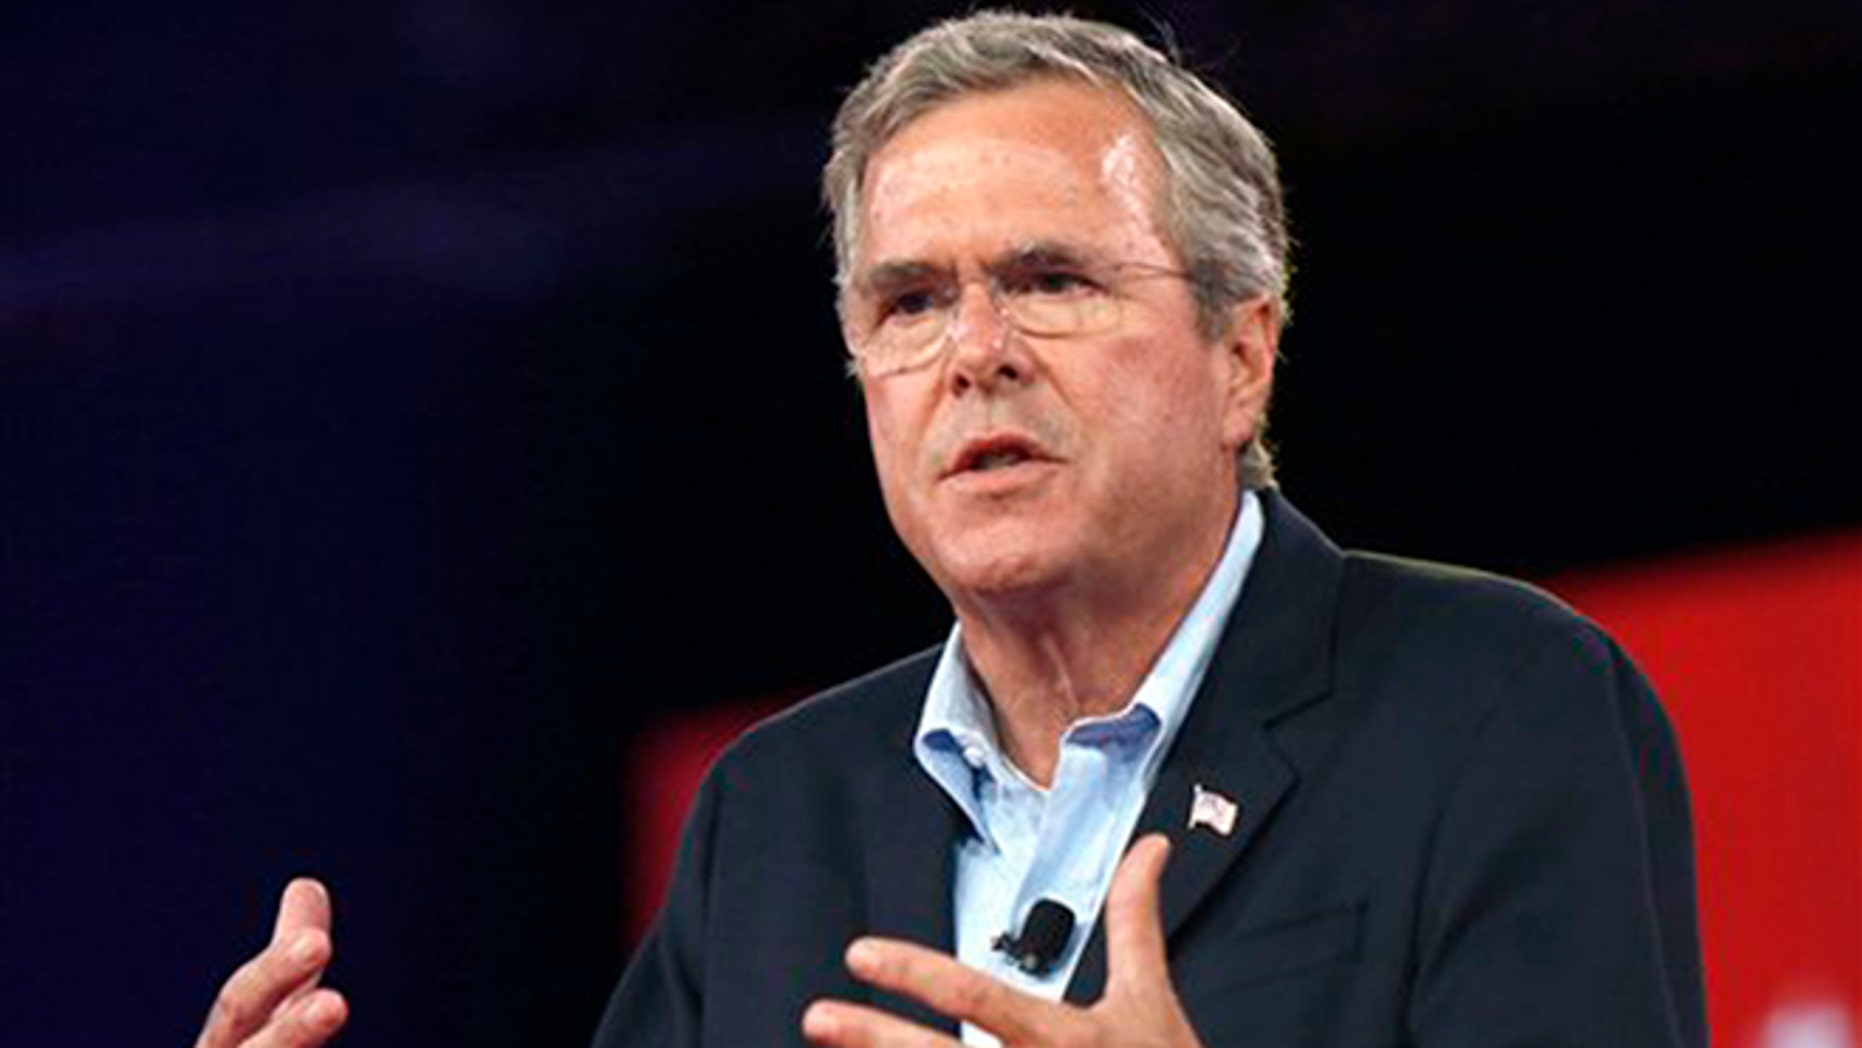 Republican presidential candidate, former Florida Gov. Jeb Bush, speaks at the Defending the American Dream summit hosted by Americans for Prosperity, Friday, Aug. 21, 2015, at the Greater Columbus Convention Center in Columbus, Ohio. (AP Photo/Paul Vernon)